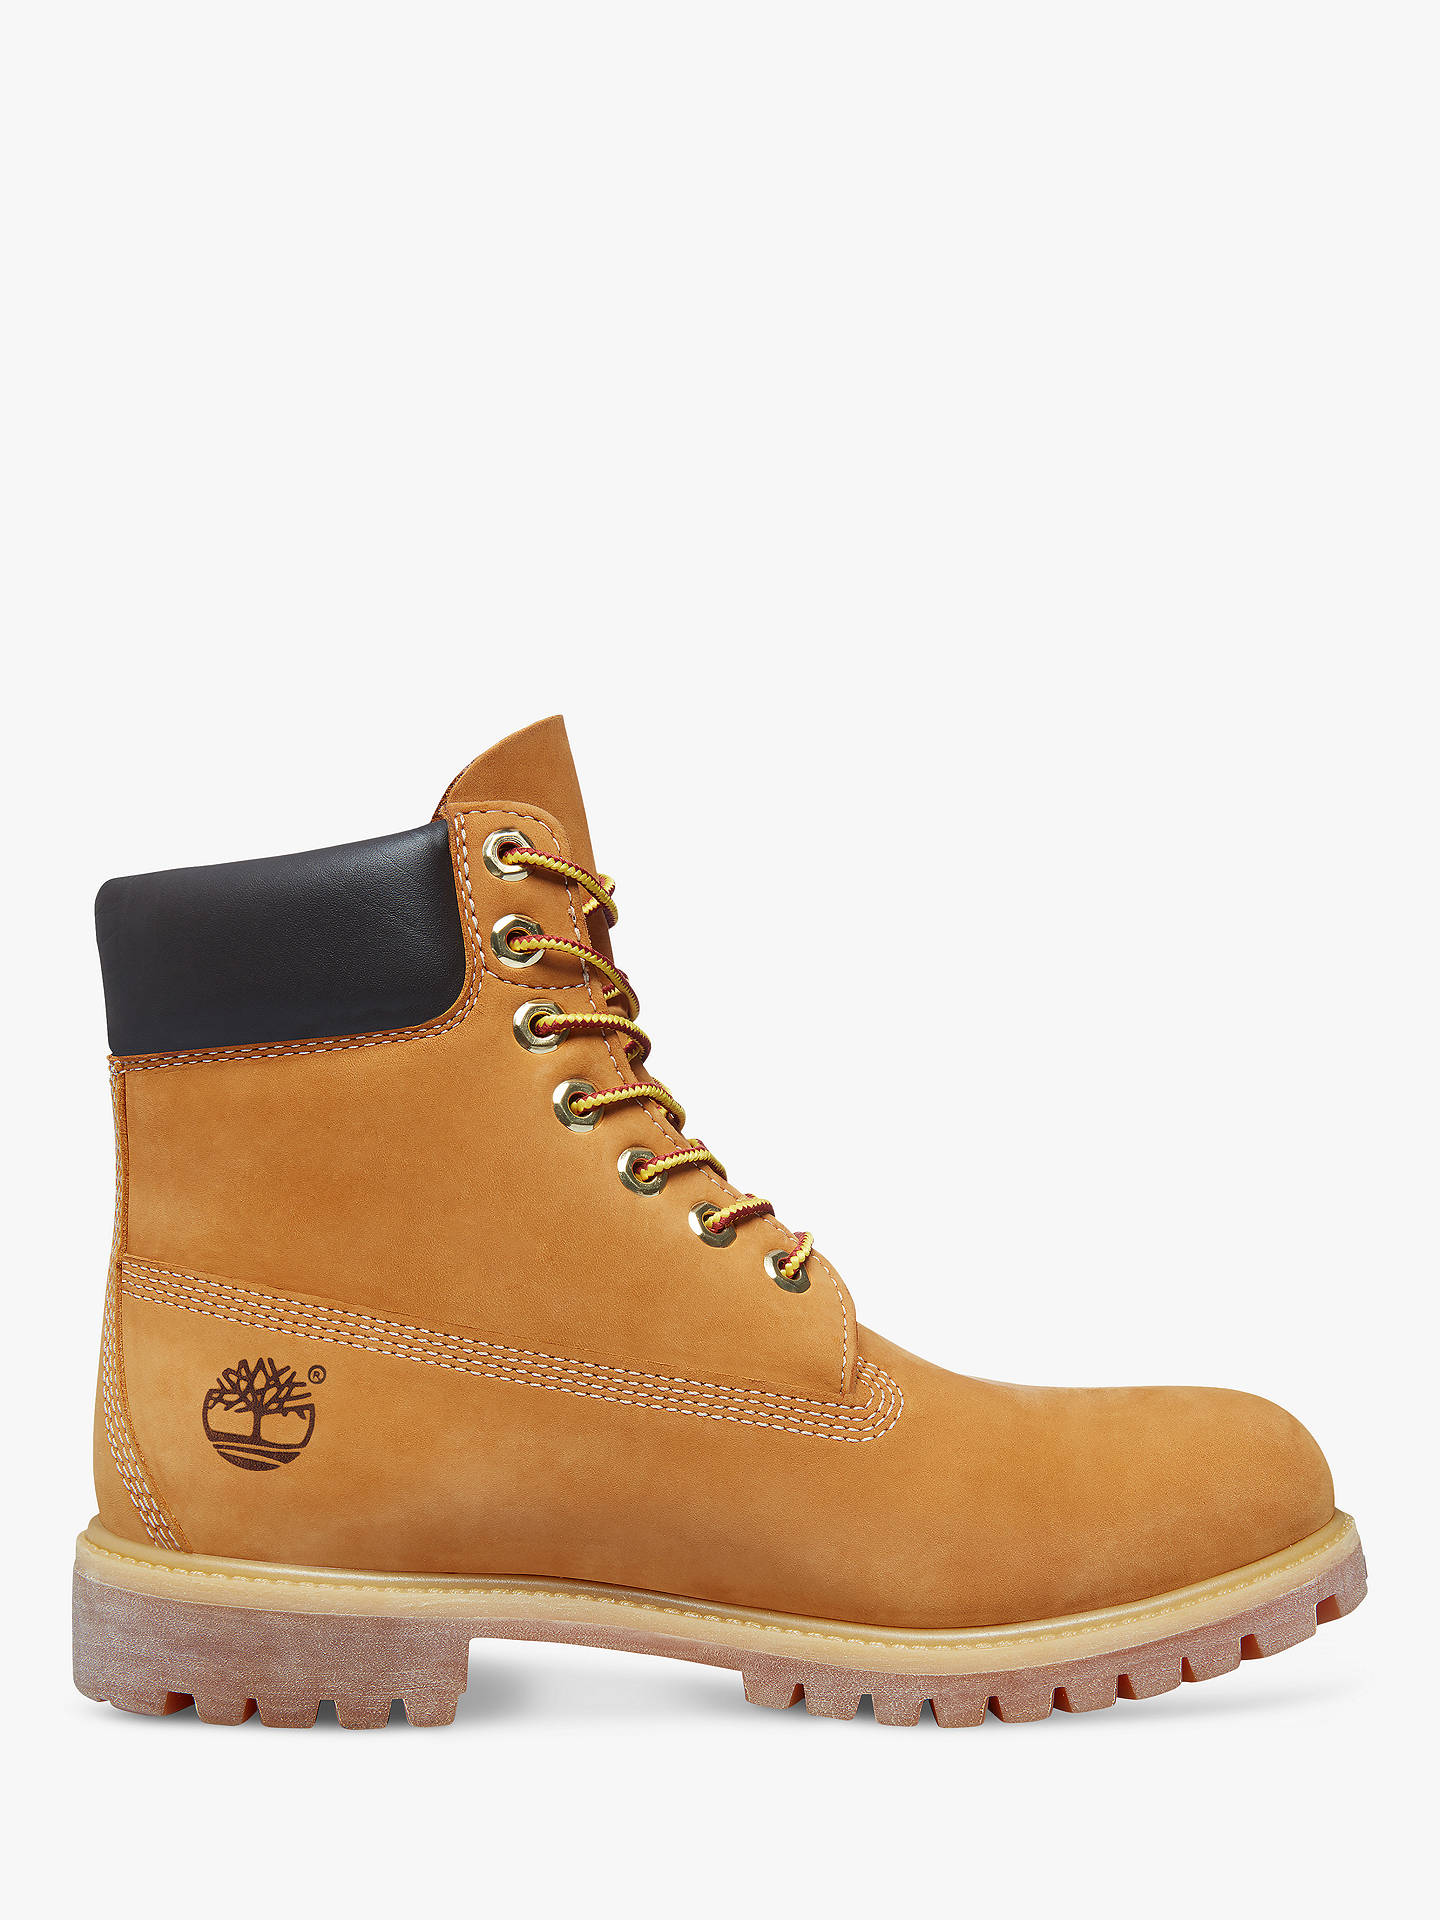 0af5b47e4d0 Timberland Classic 6-Inch Premium Waterproof Boots, Yellow